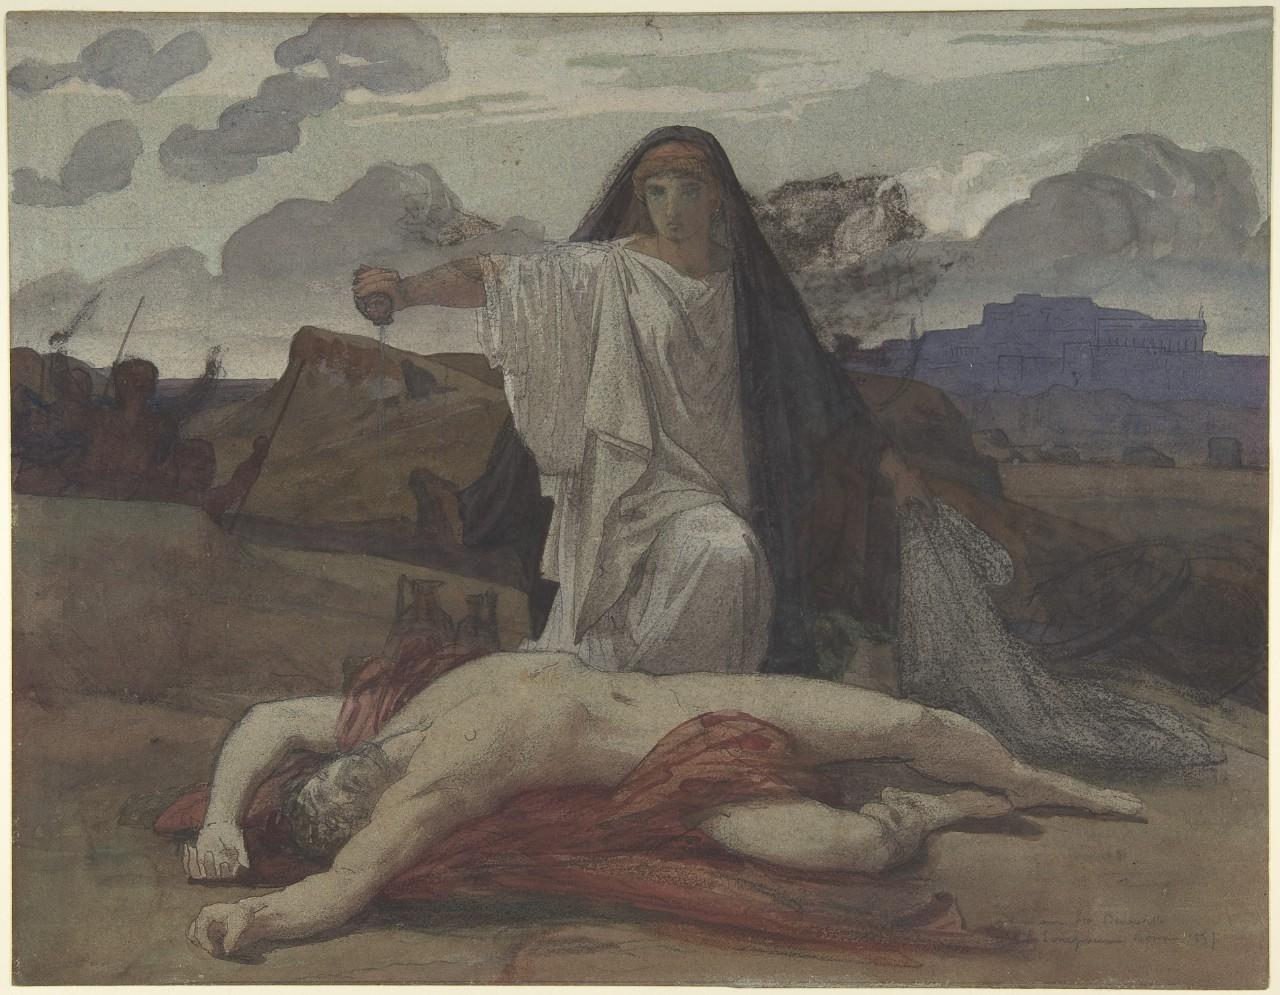 A painting of Antigone performing funeral rites on her slain brother